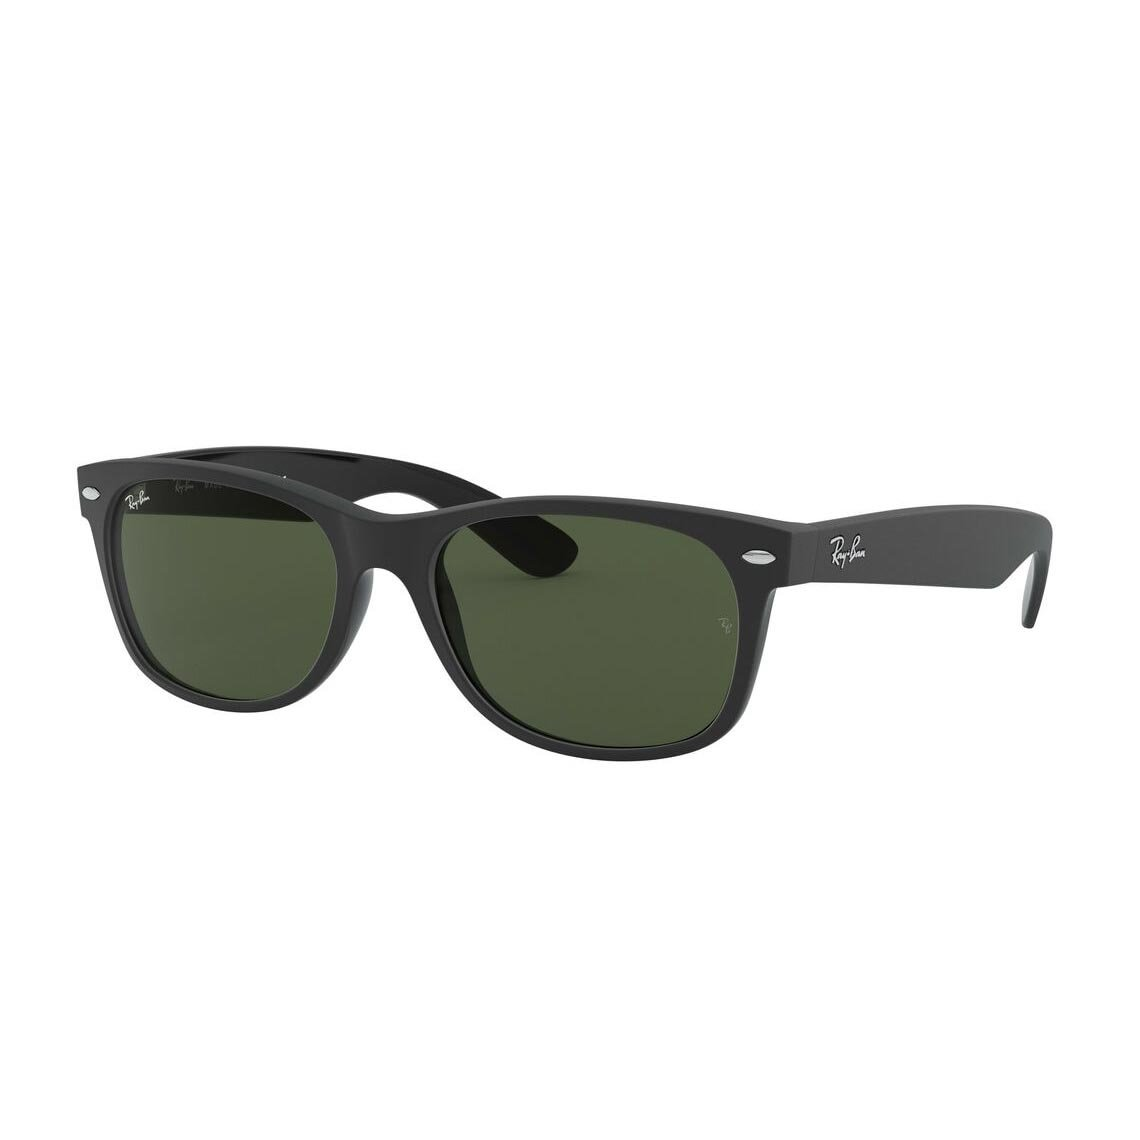 Ray-Ban New Wayfarer RB2132 646231 5818